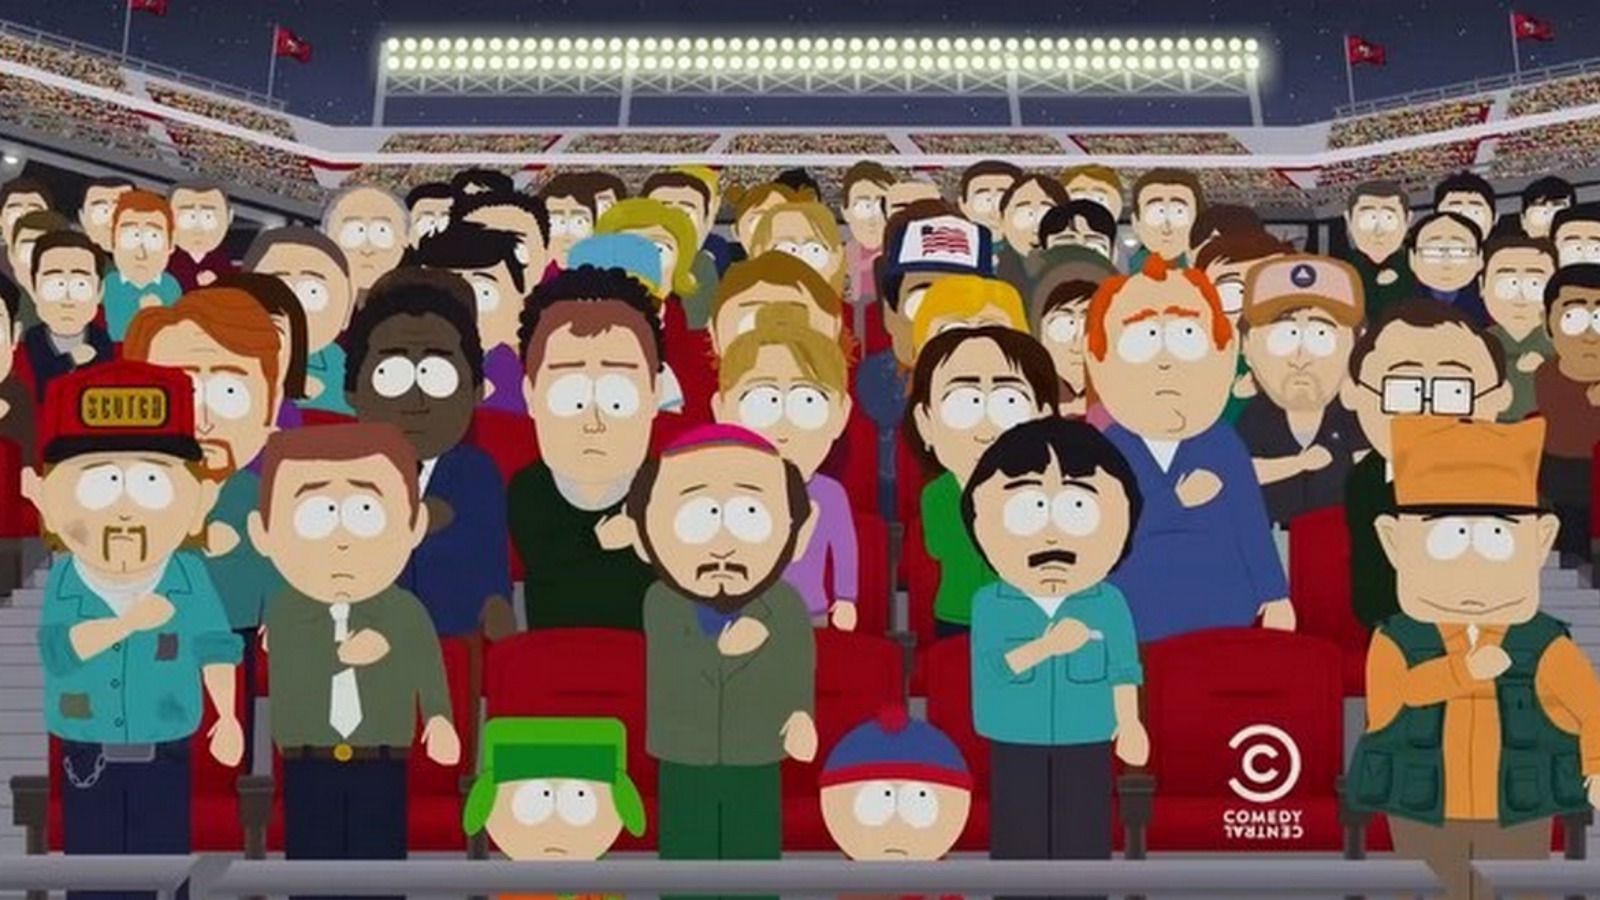 South Park Launches New Season With National Anthem Theme